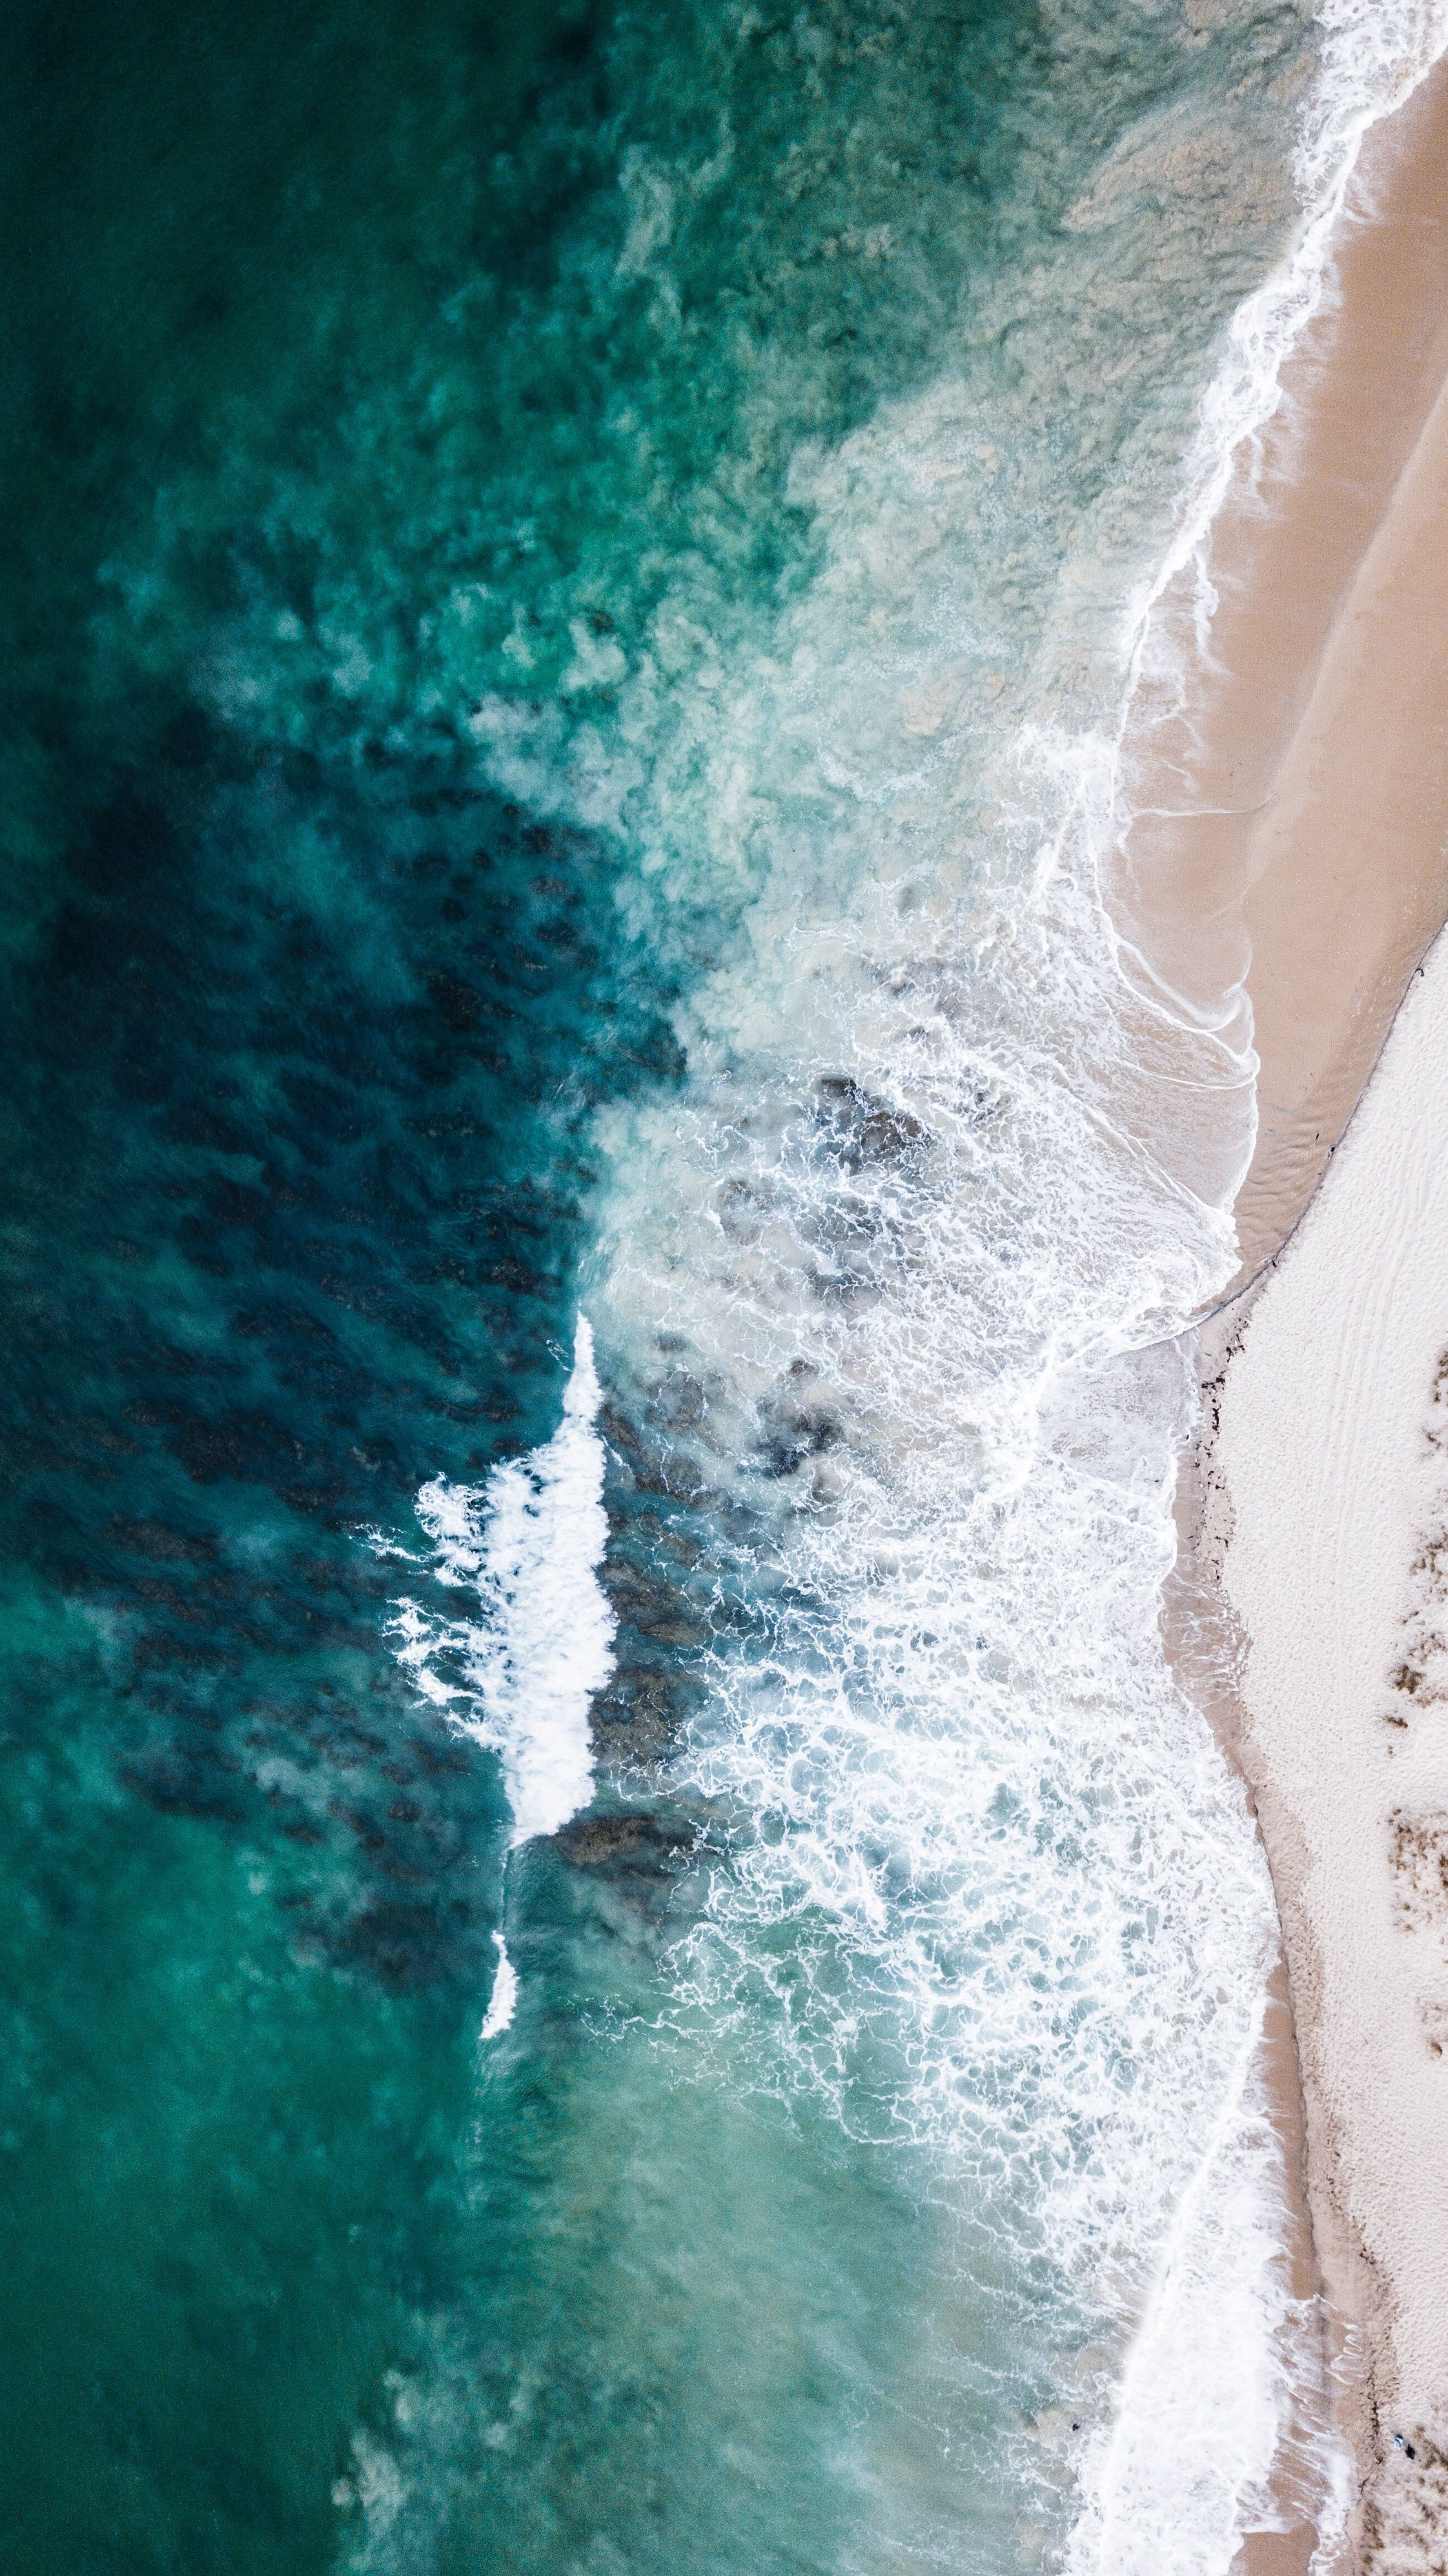 Wallpaper Iphone Android Landscapingbackground Iphone Wallpaper Water Artsy Wallpaper Iphone Landscape Background Beach Wallpaper Iphone Wallpaper Water